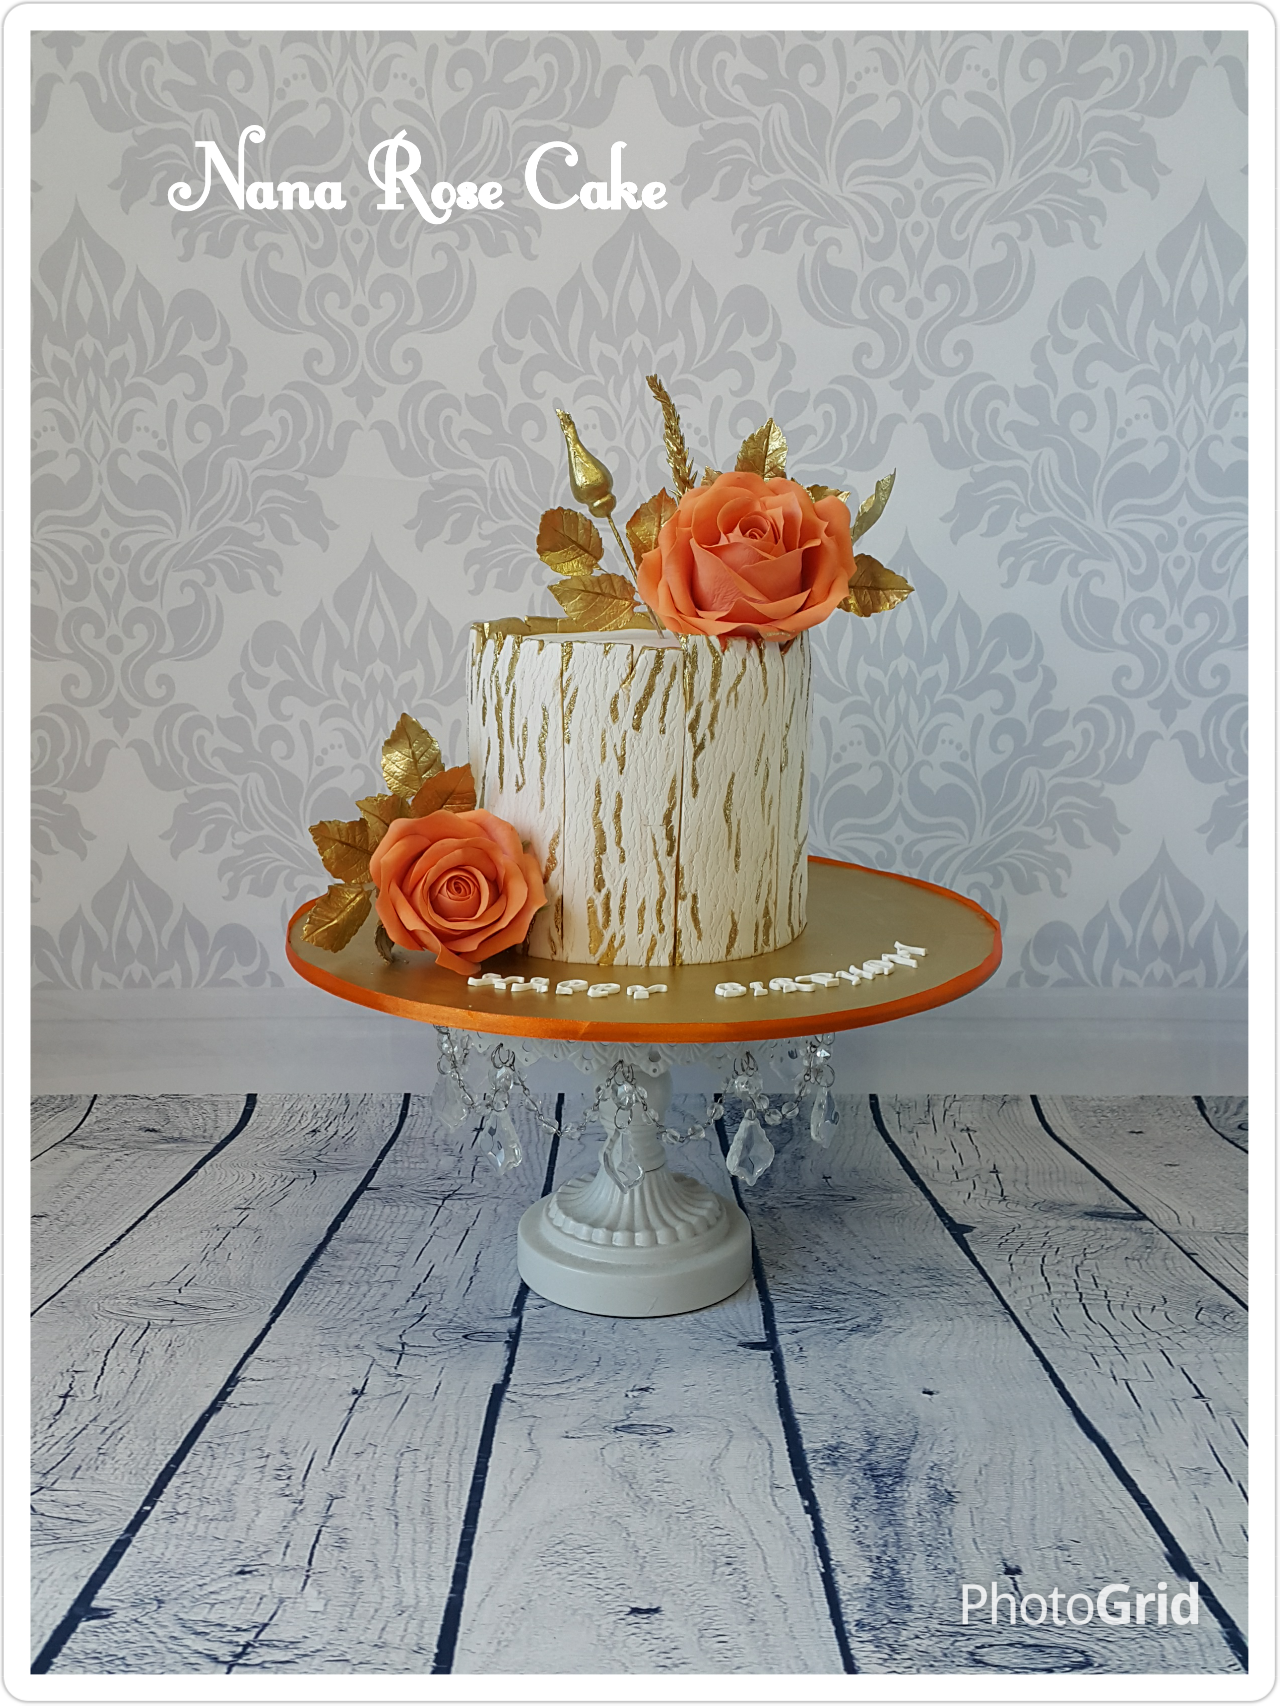 White fondant cake with orange sugar flowers